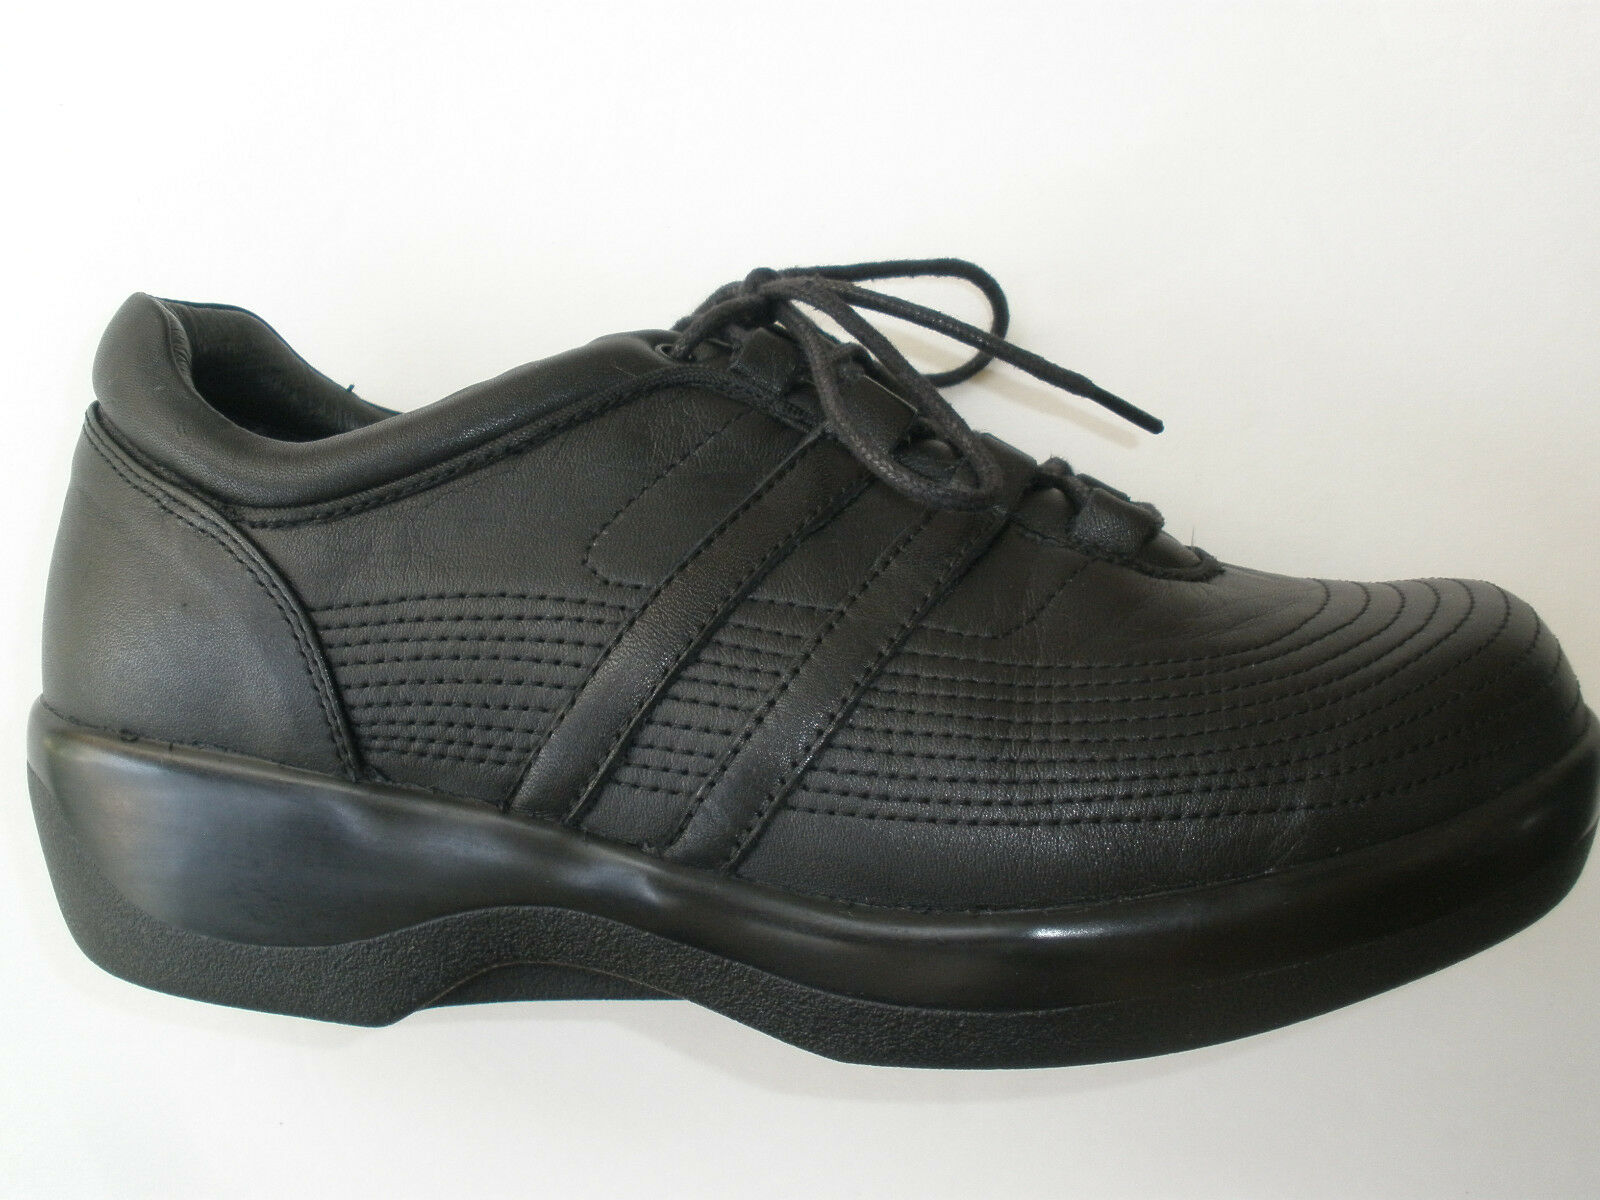 AETREX AMBULATOR LEATHER WMNS CASUAL TERPEUTIC DIABETIC SHOES US 8 XW UK 6  129